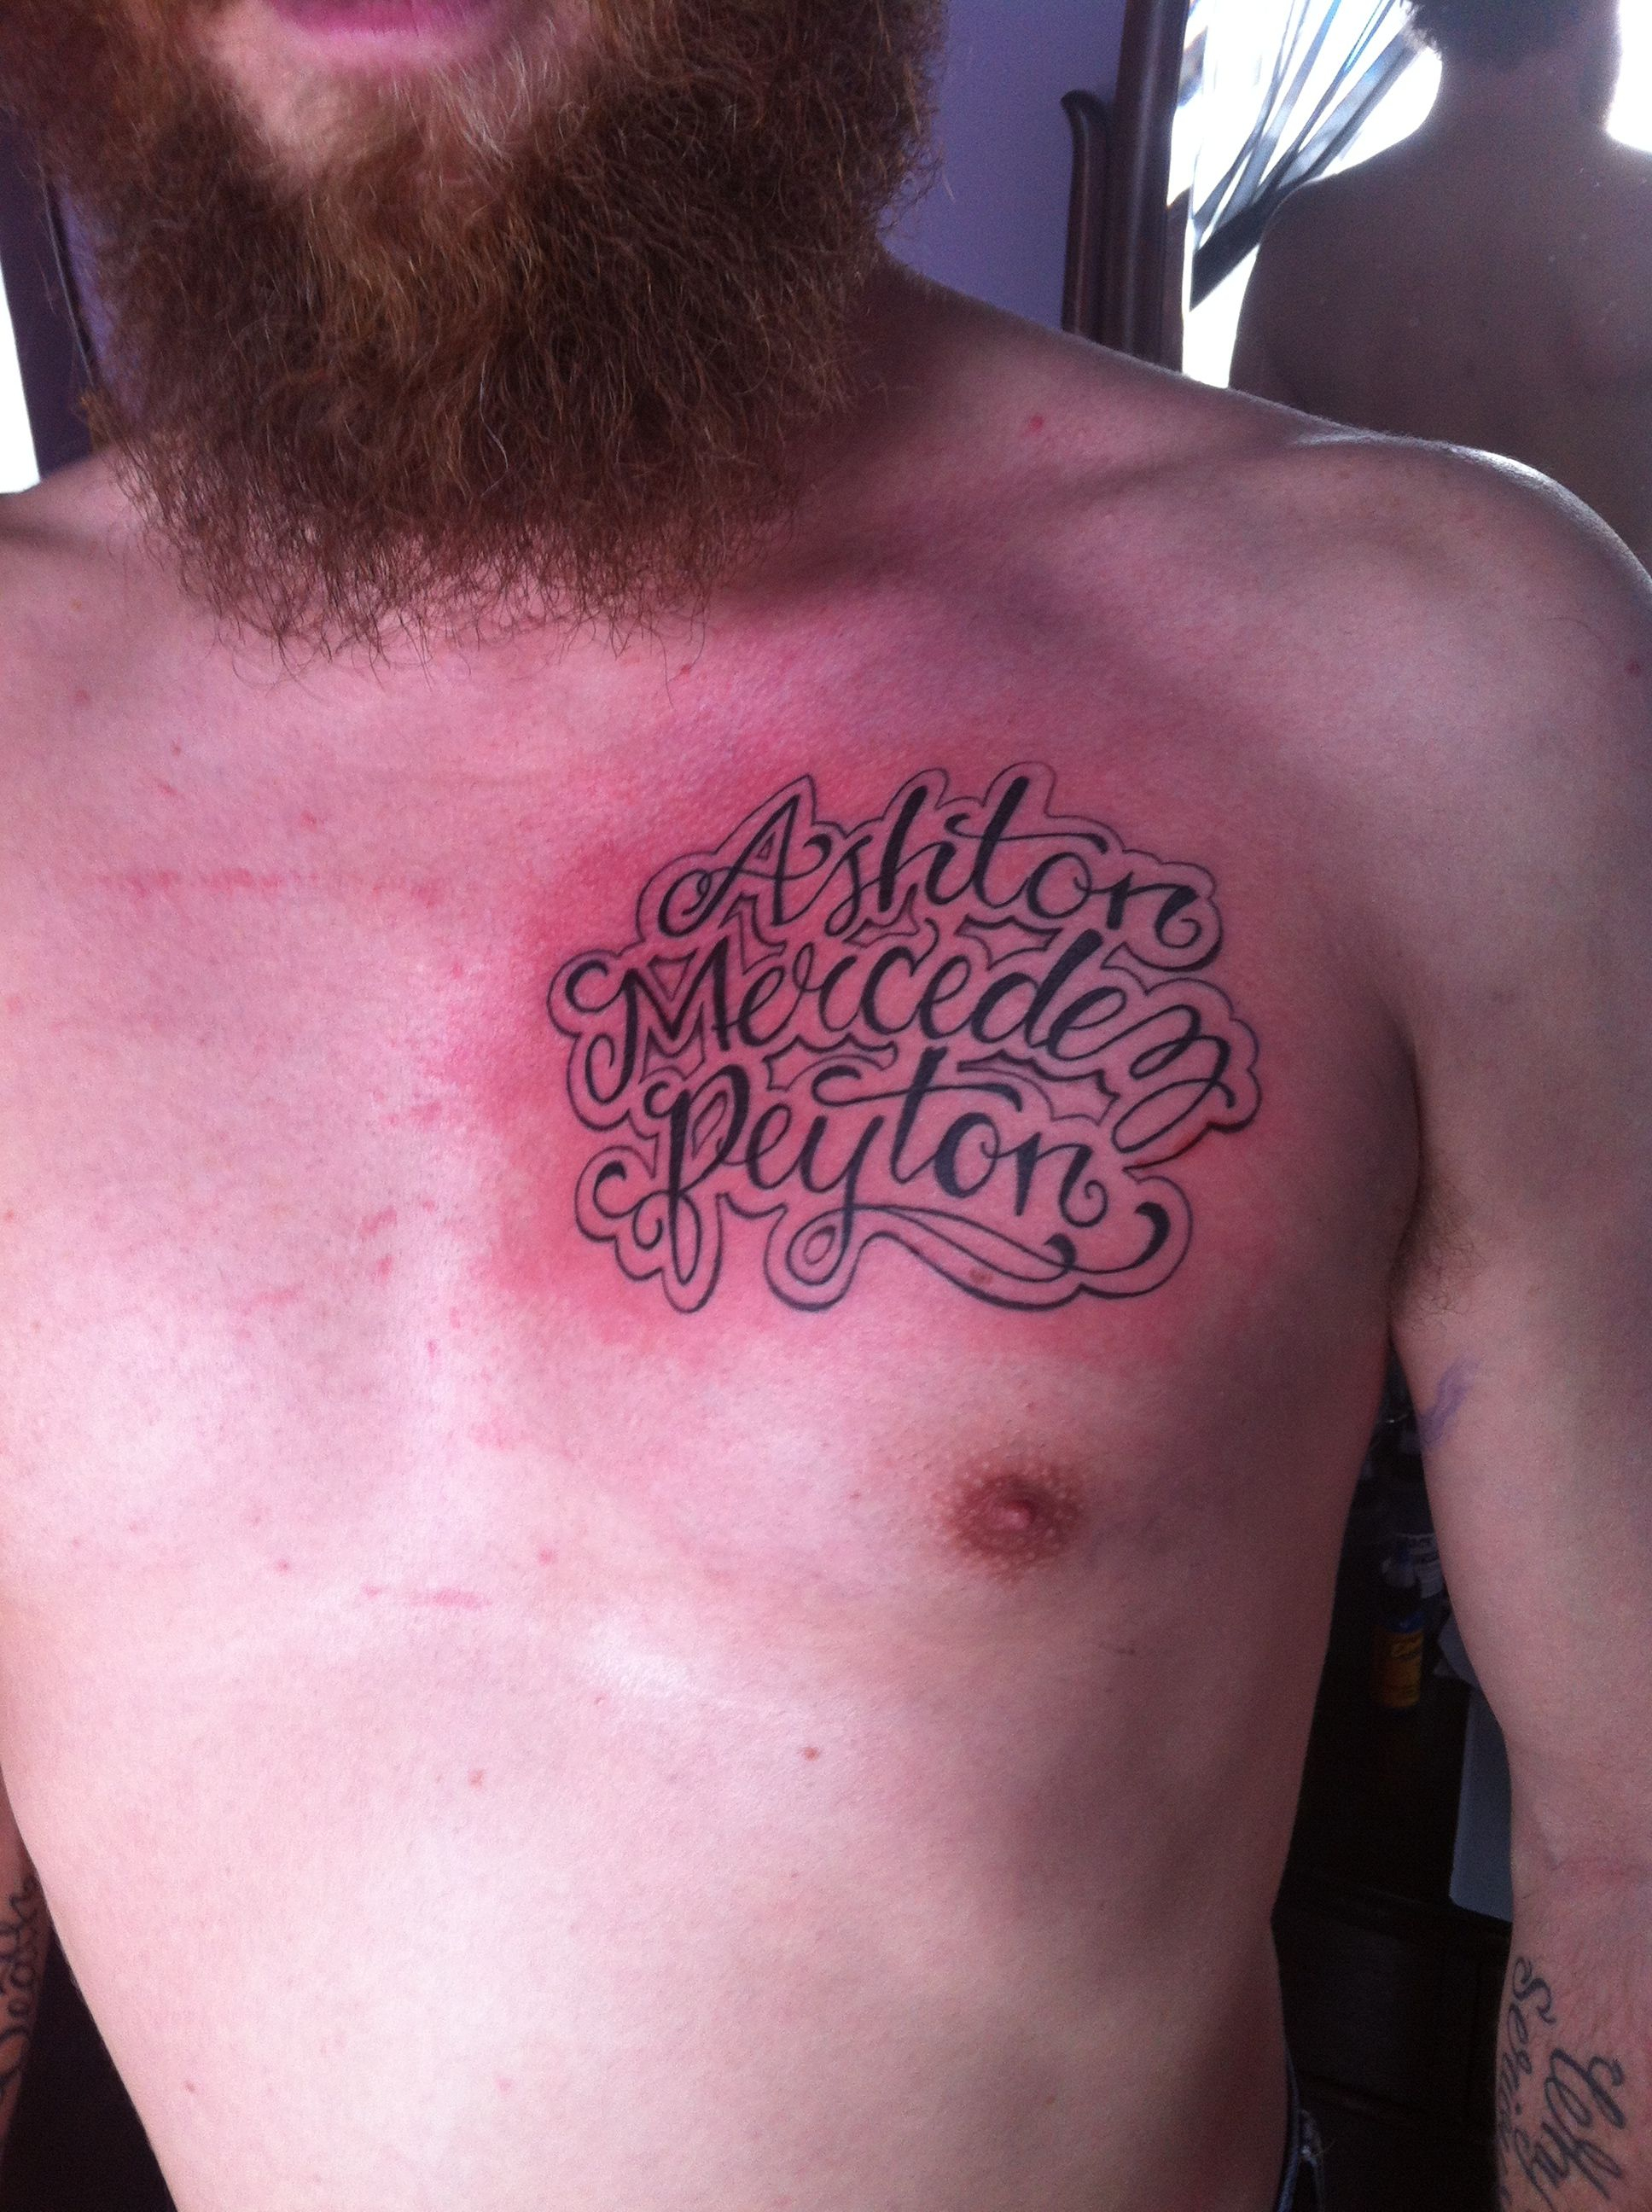 Chest Tattoo Of Kids Names Placement Of Tattoo Tattoos For Him regarding dimensions 1936 X 2592